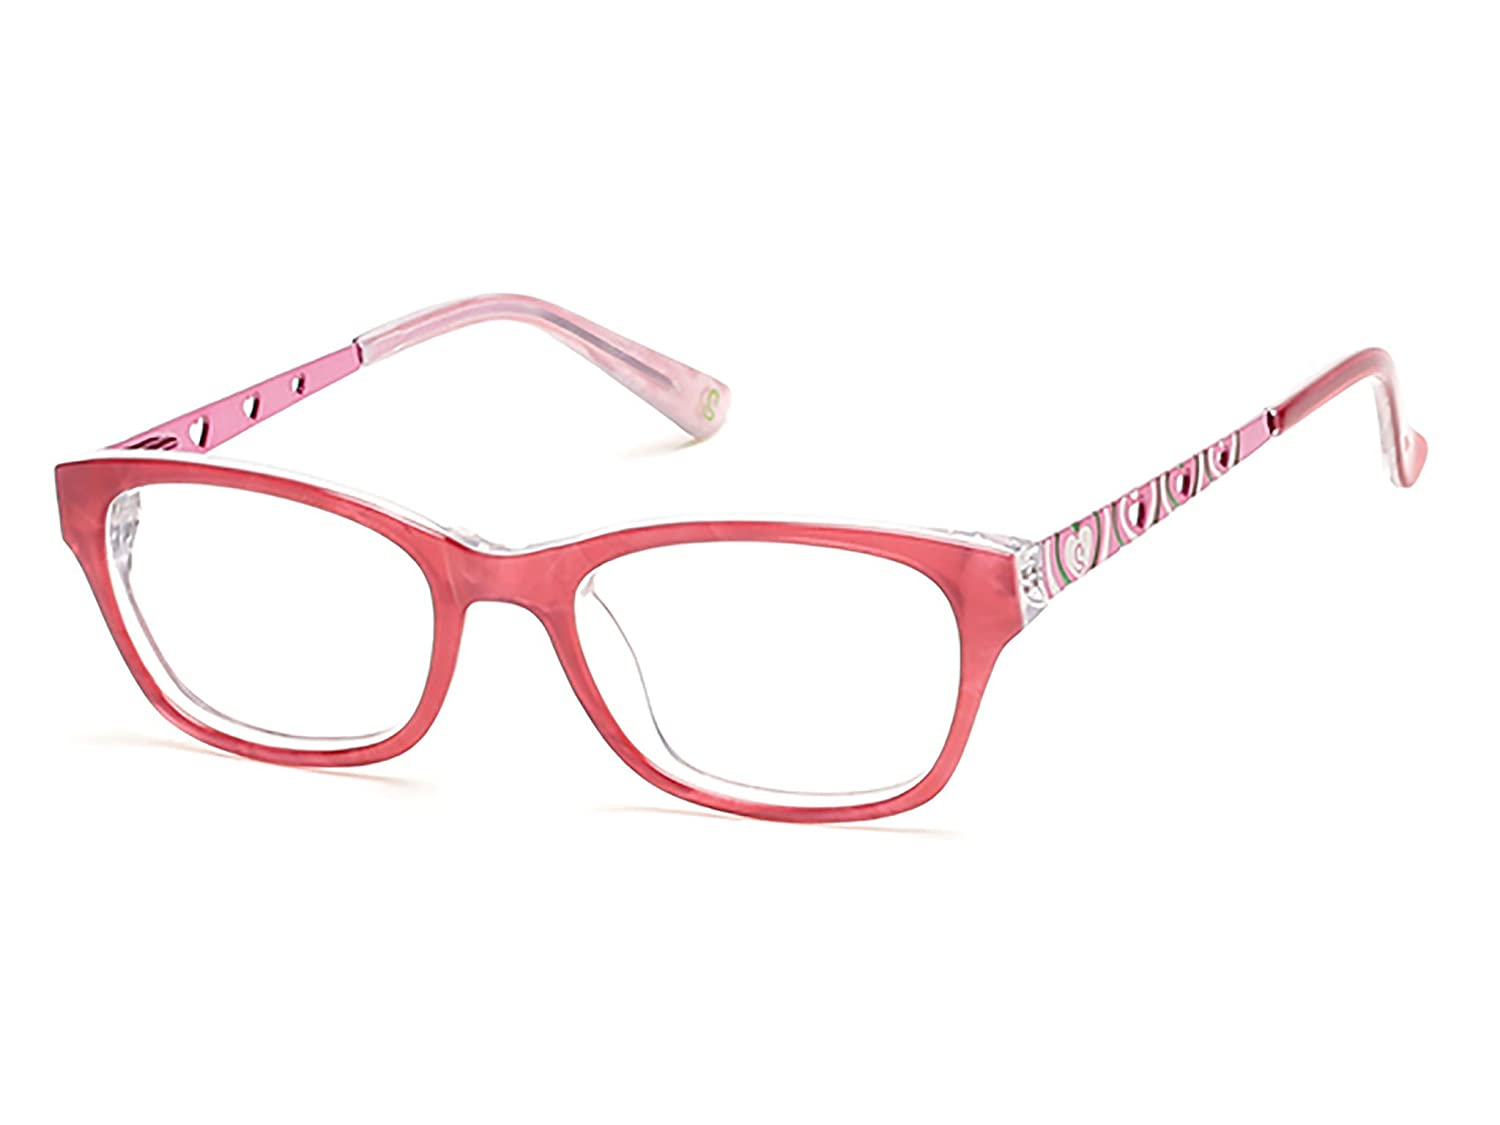 : Skechers Eyeglasses Girls Junior 1601 Sk1601